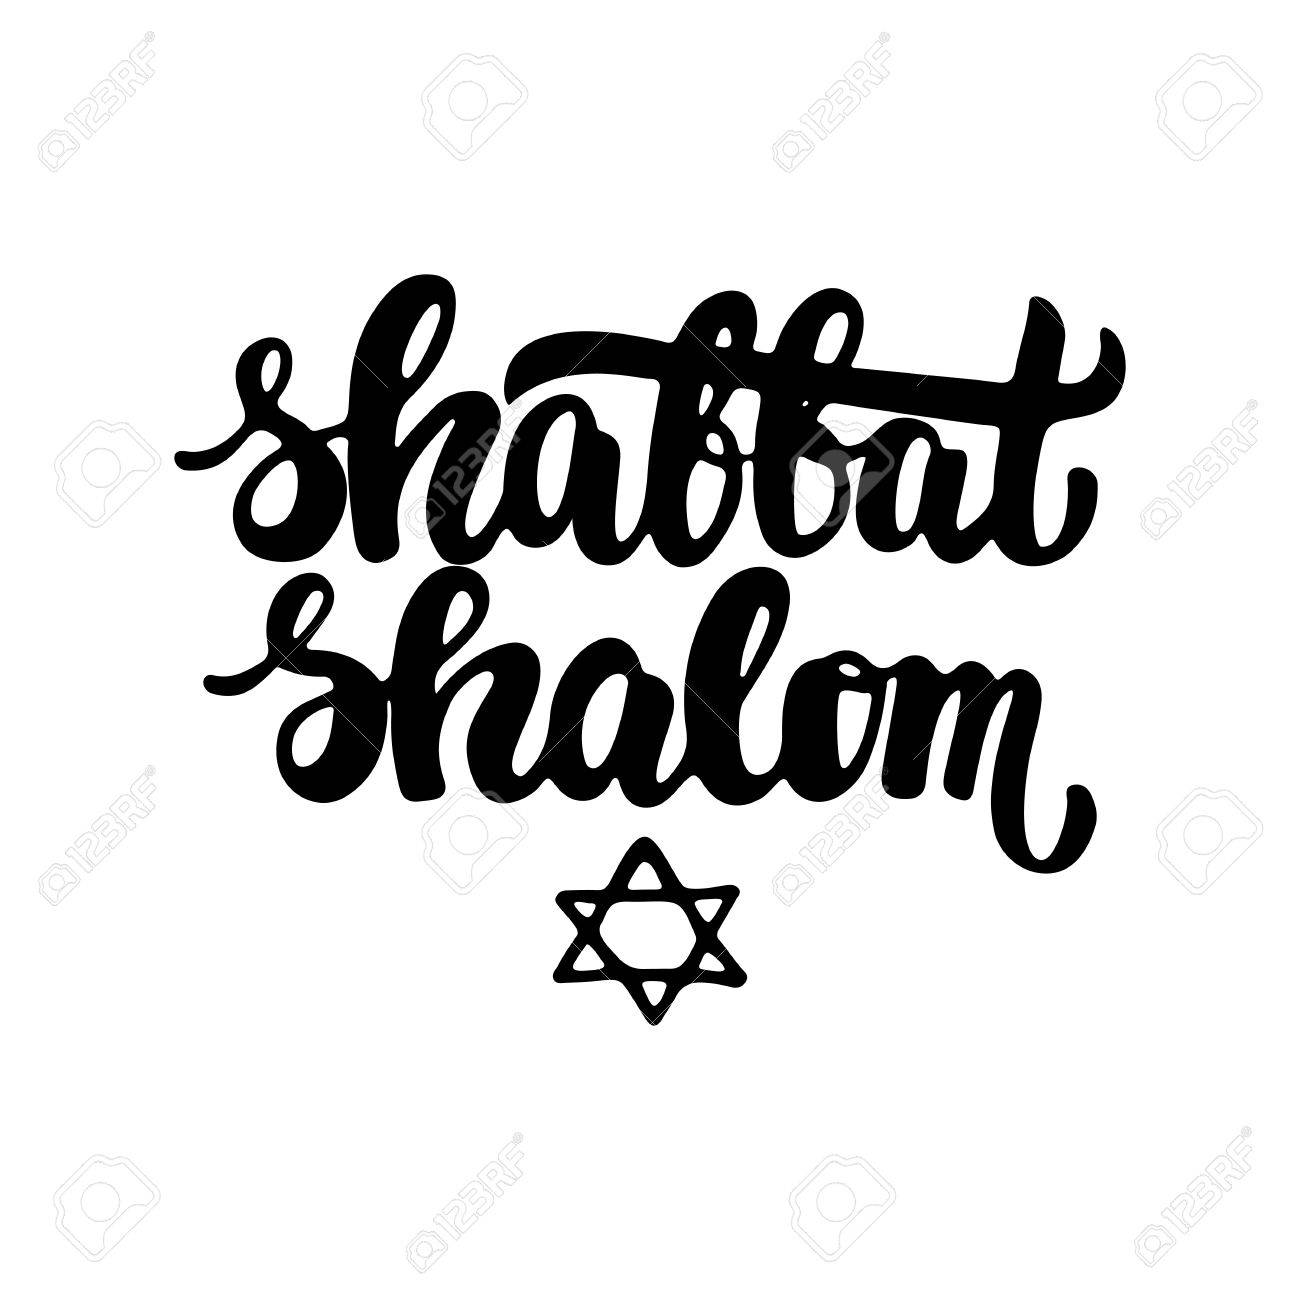 Shabbat shalom hand drawn lettering phrase isolated on the shabbat shalom hand drawn lettering phrase isolated on the white background fun brush ink thecheapjerseys Image collections